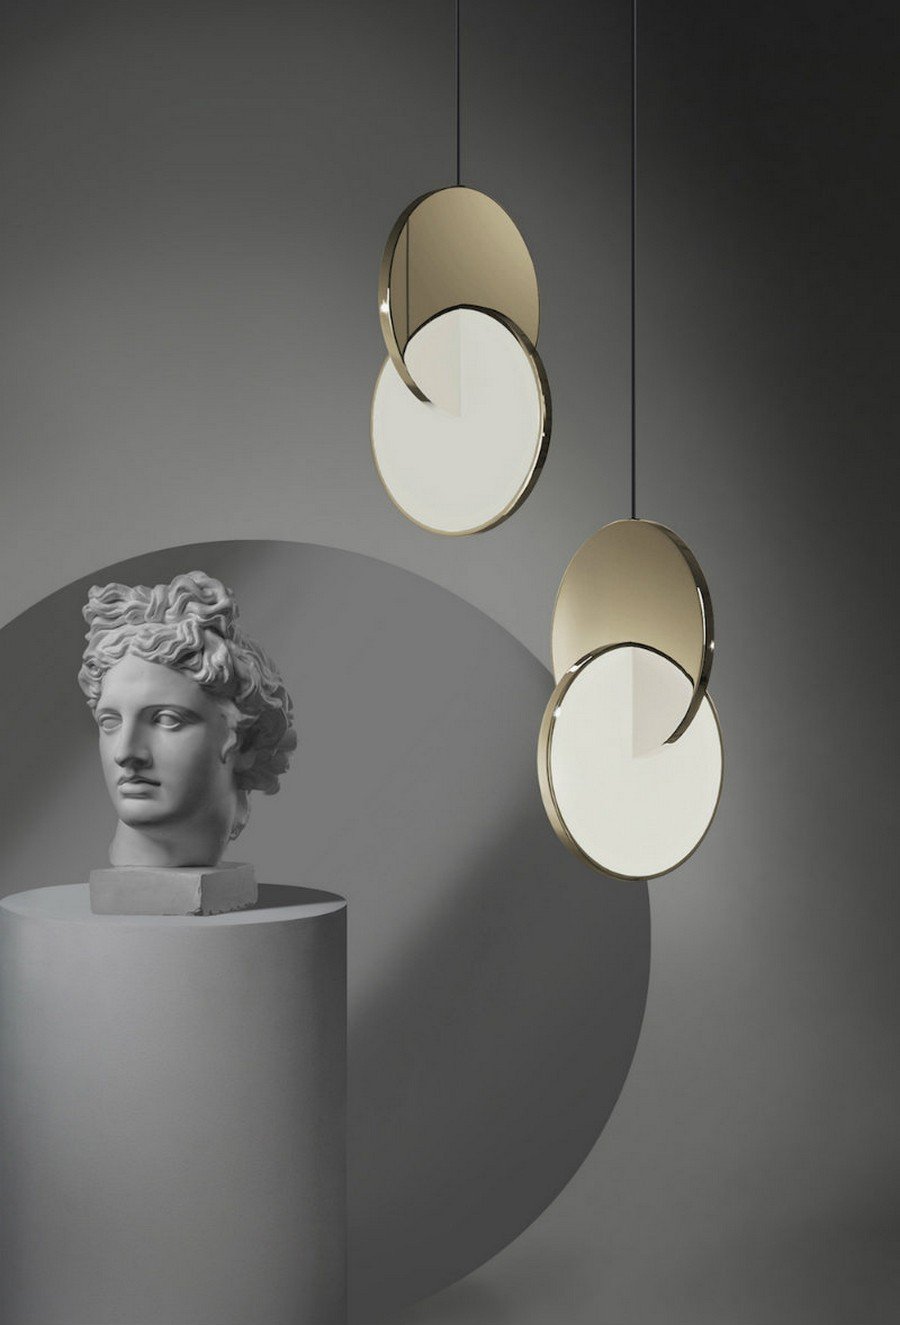 NYCxDesign 2019: Visit Lee Broom's Award-Winning Lighting Collection nycxdesign 2019 NYCxDesign 2019: Visit Lee Broom's Award-Winning Lighting Collection NYCxDesign 2019 Visit Lee Broom   s Award Winning Lighting Collection 6